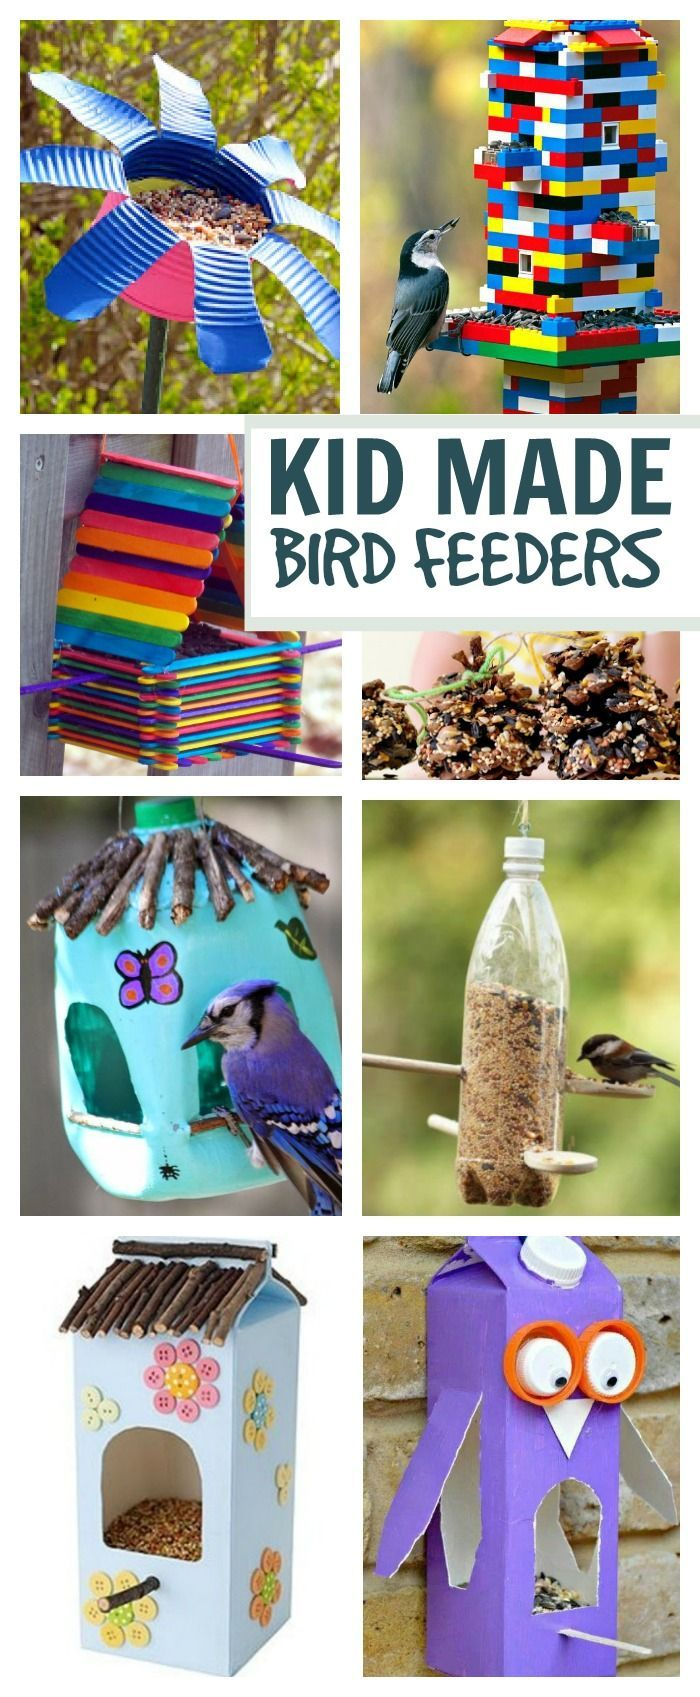 18 totally awesome bird feeder crafts for kids these are so cool i love - Pictures Of Crafts For Kids